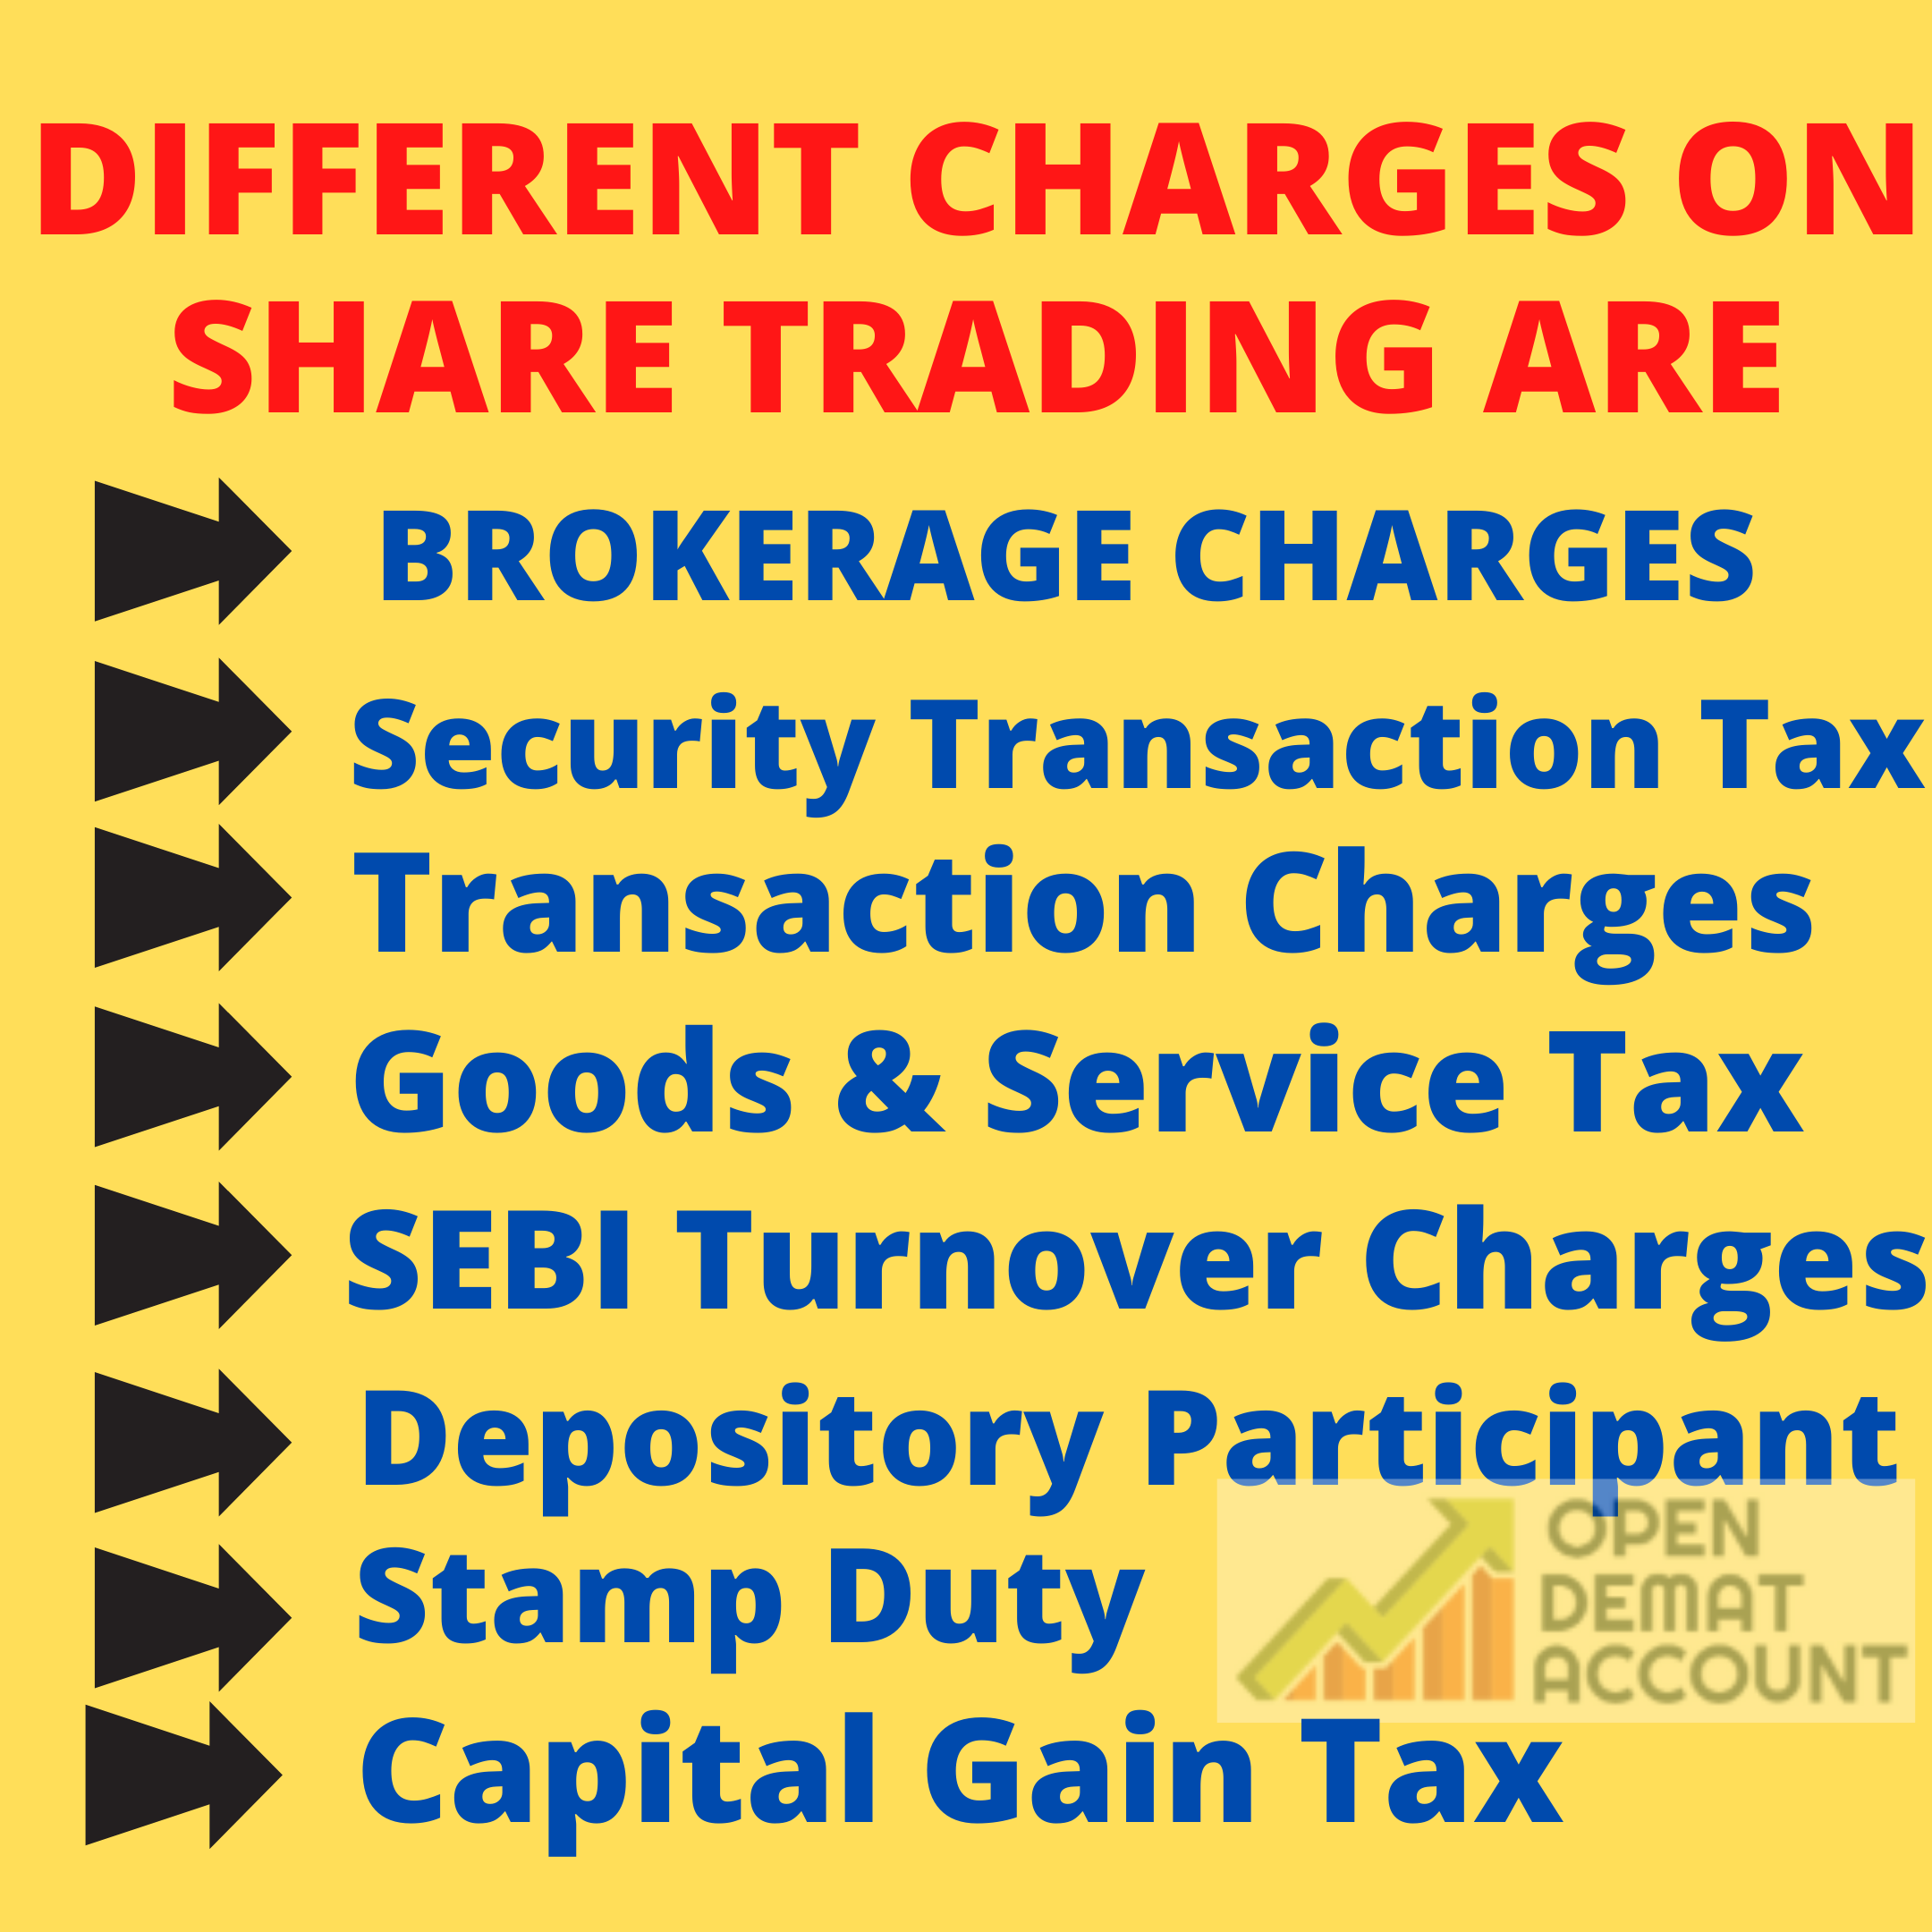 Different charges on share trading